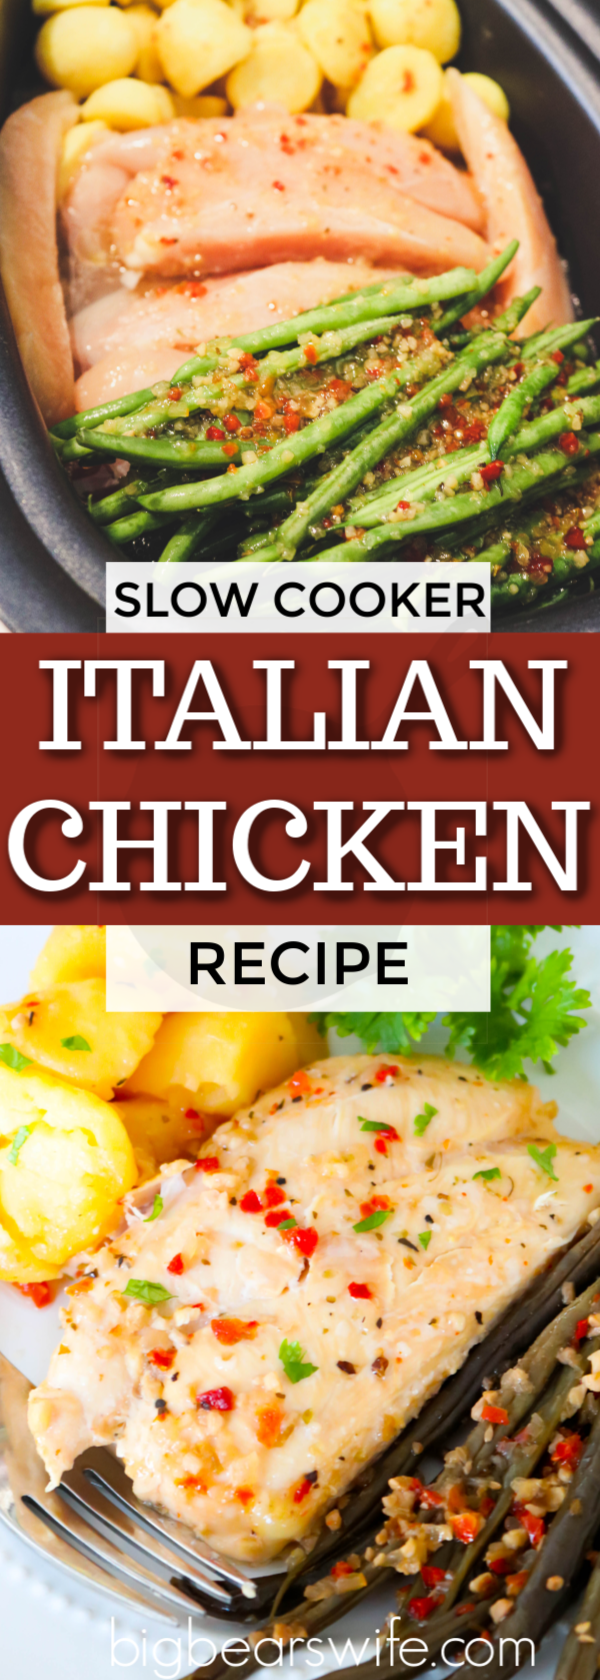 Drag that slow cooker out and make this Slow Cooker Italian Chicken, Potatoes and Green Beans for dinner with just a few ingredients and a bit of time in the slow cooker! #SlowCooker #ItalianChicken